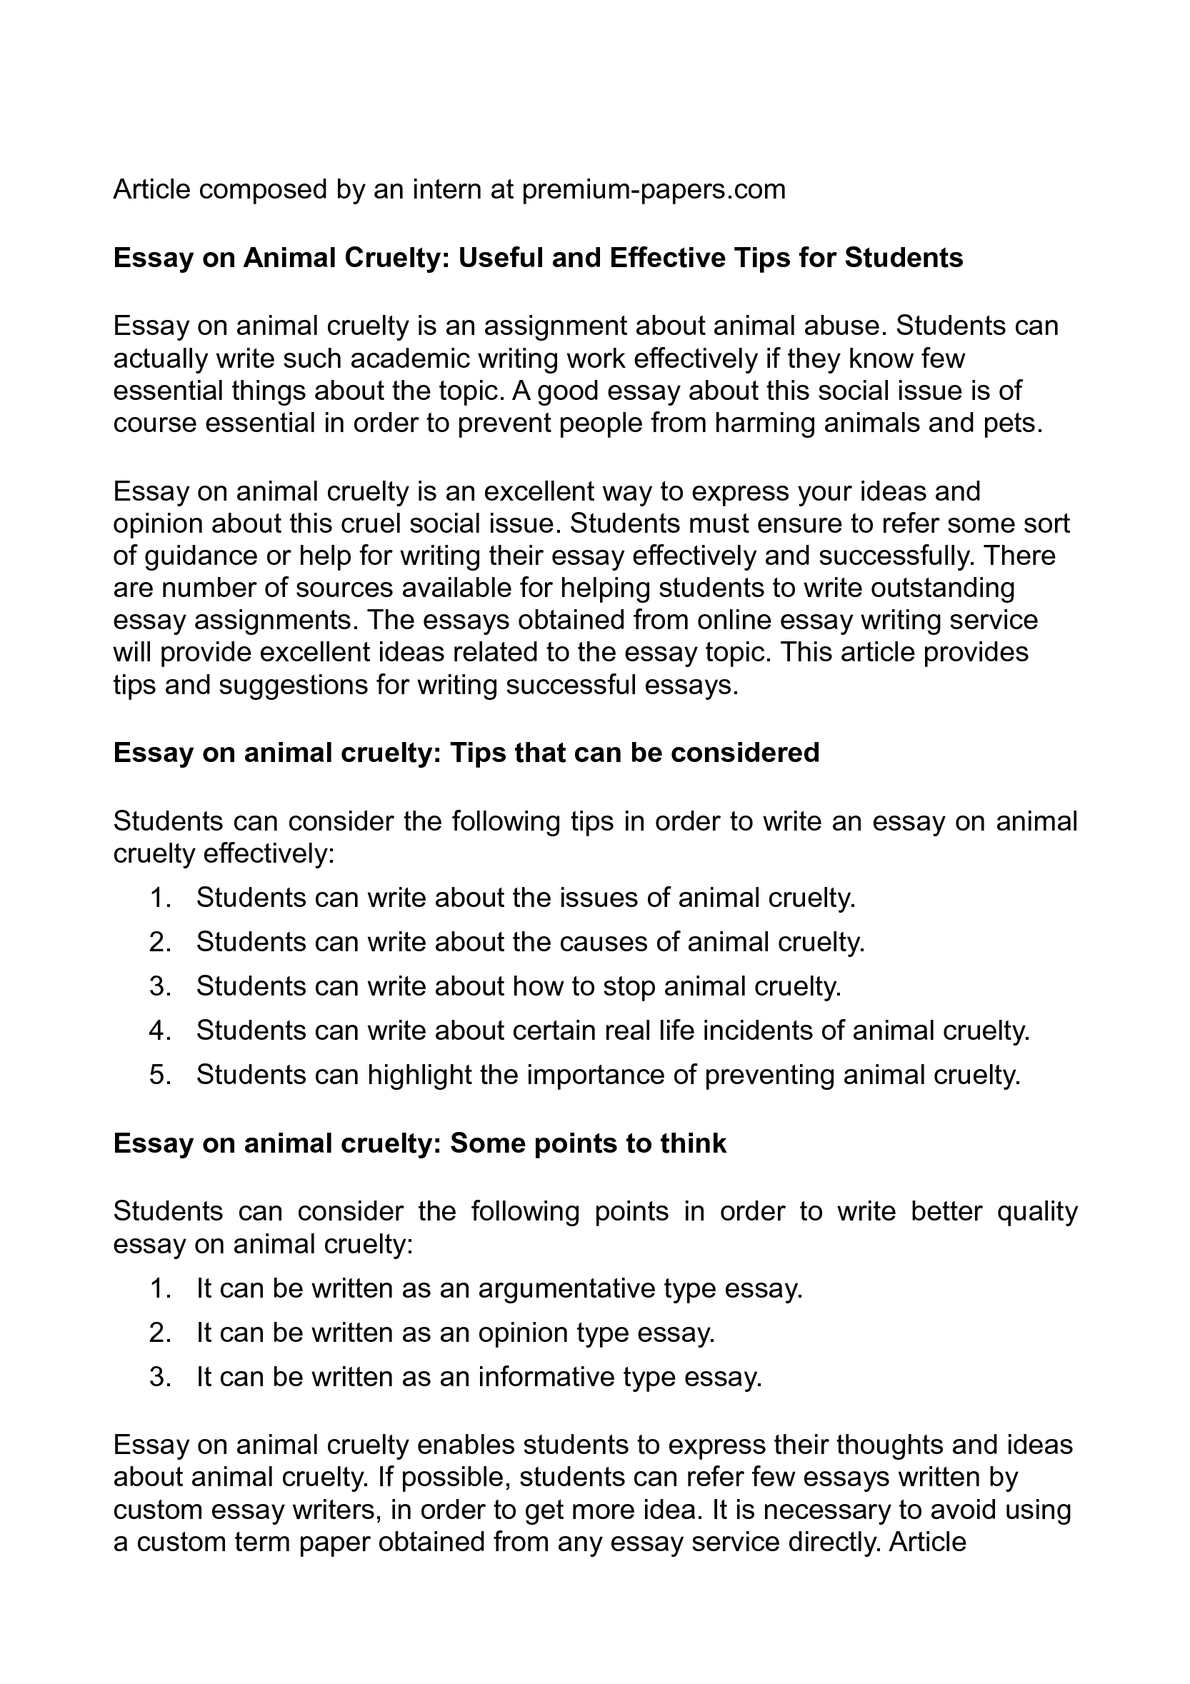 Brand Essay Essay On Animal Cruelty Useful And Effective Tips For Essay On Animal  Cruelty Useful And Effective Personal Narrative Essay Examples High School also Nhs Essay Animal Cruelty Essay Persuasive Essay Animal Cruelty Resume Examples  Persuasive Essays On Abortion